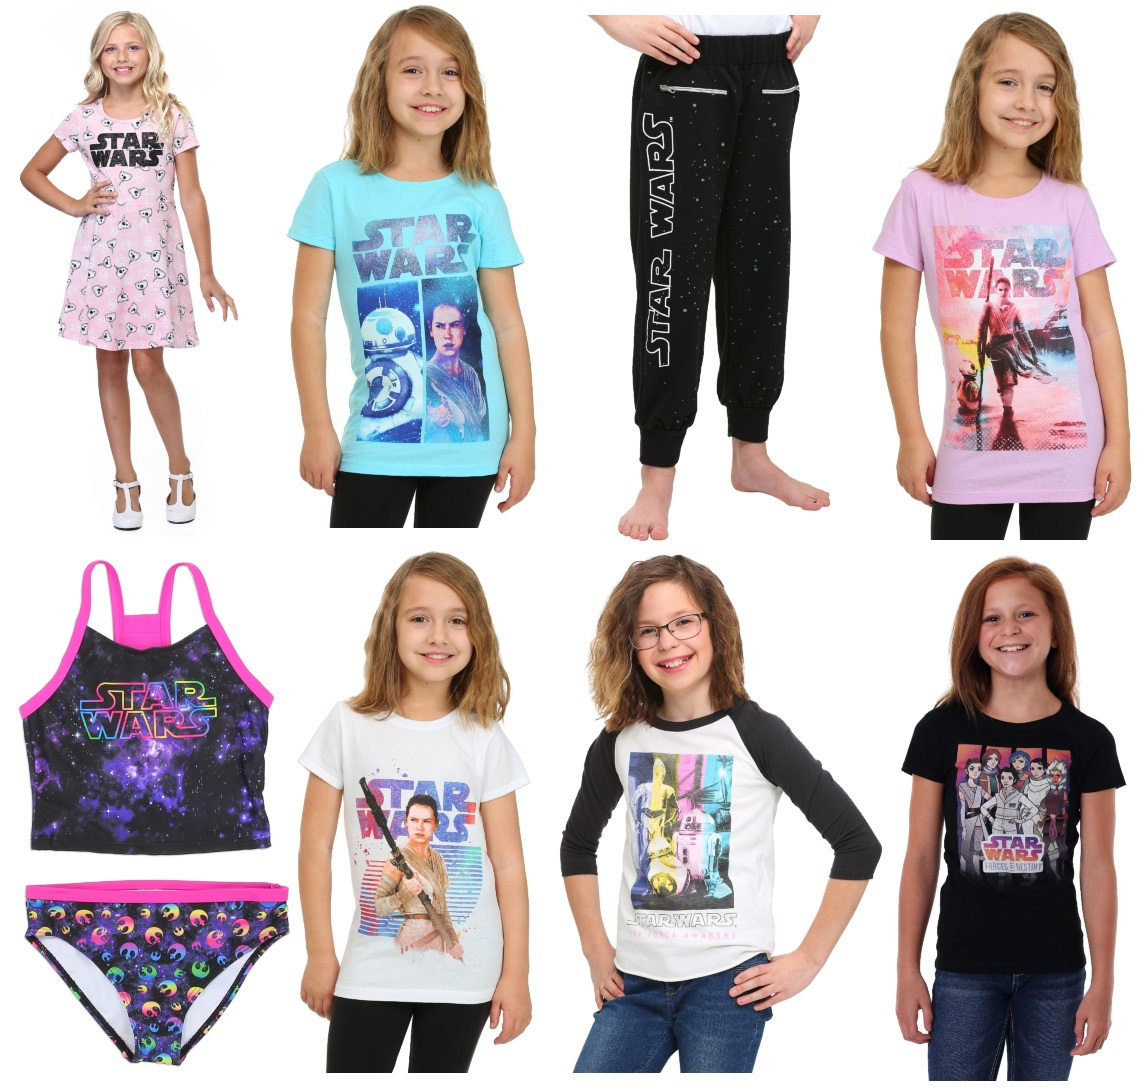 Star Wars Clothing for Girls